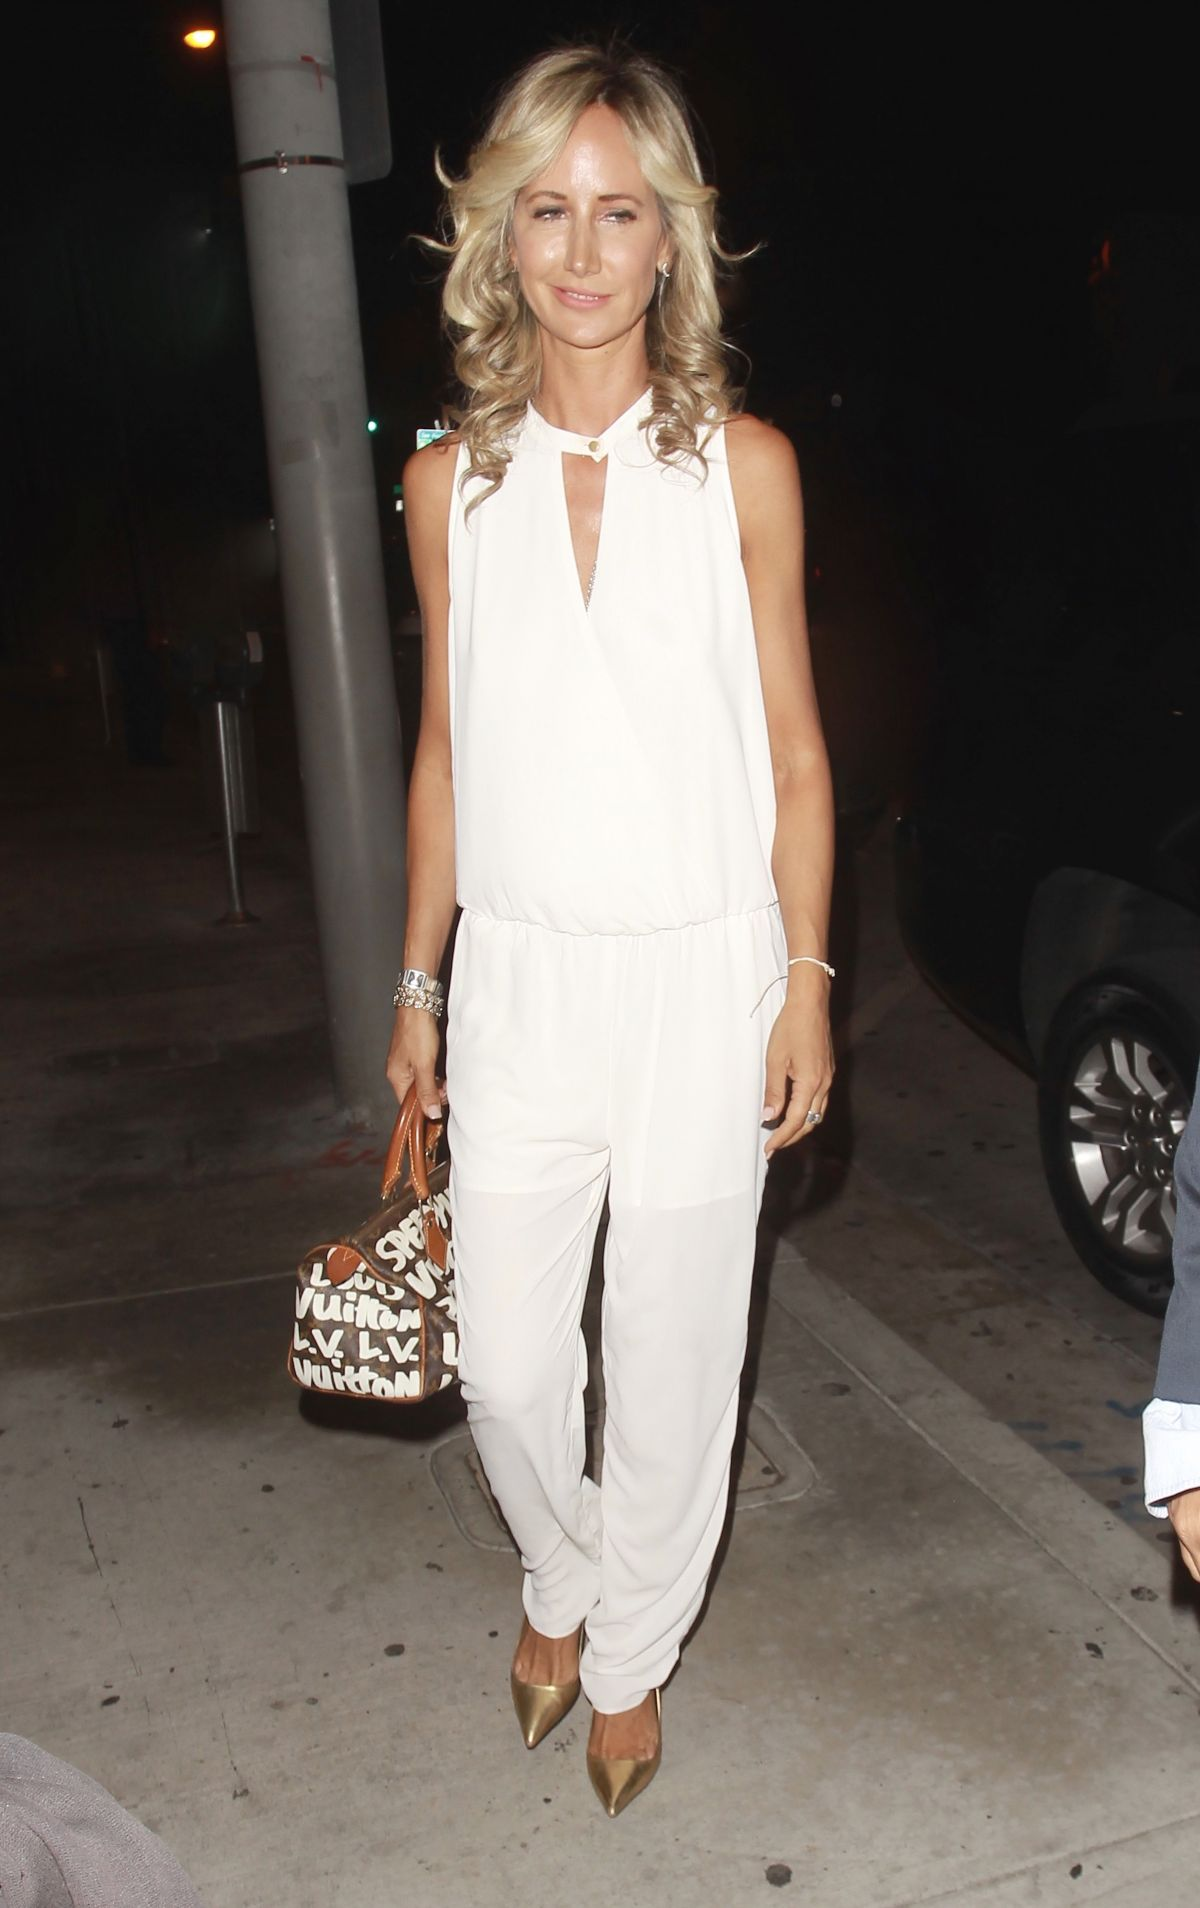 Lady victoria hervey at catch la in west hollywood nude (15 photo)